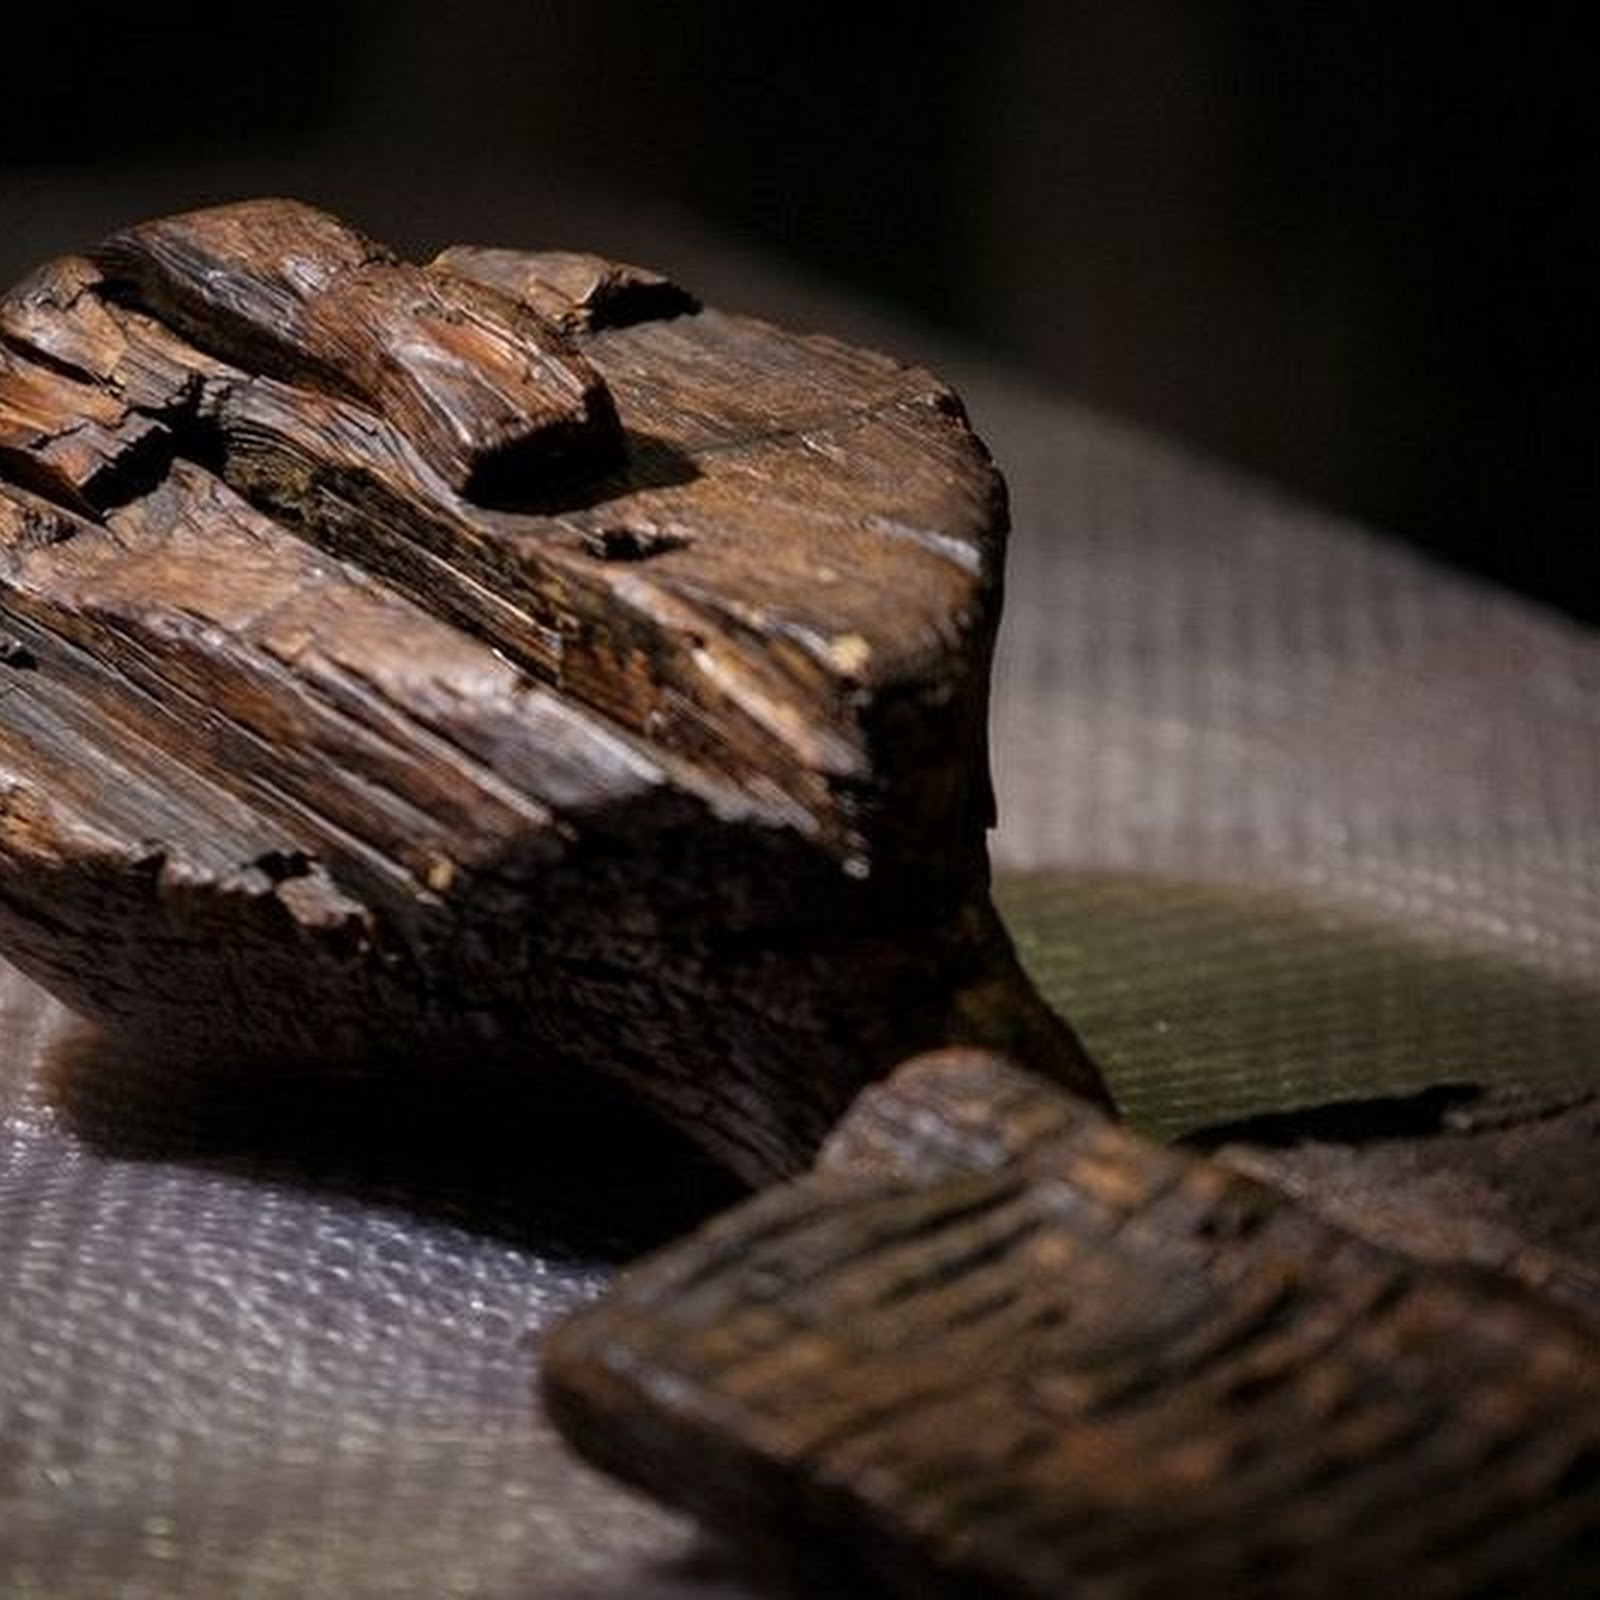 Shigir Idol: The World's Oldest Wooden Sculpture